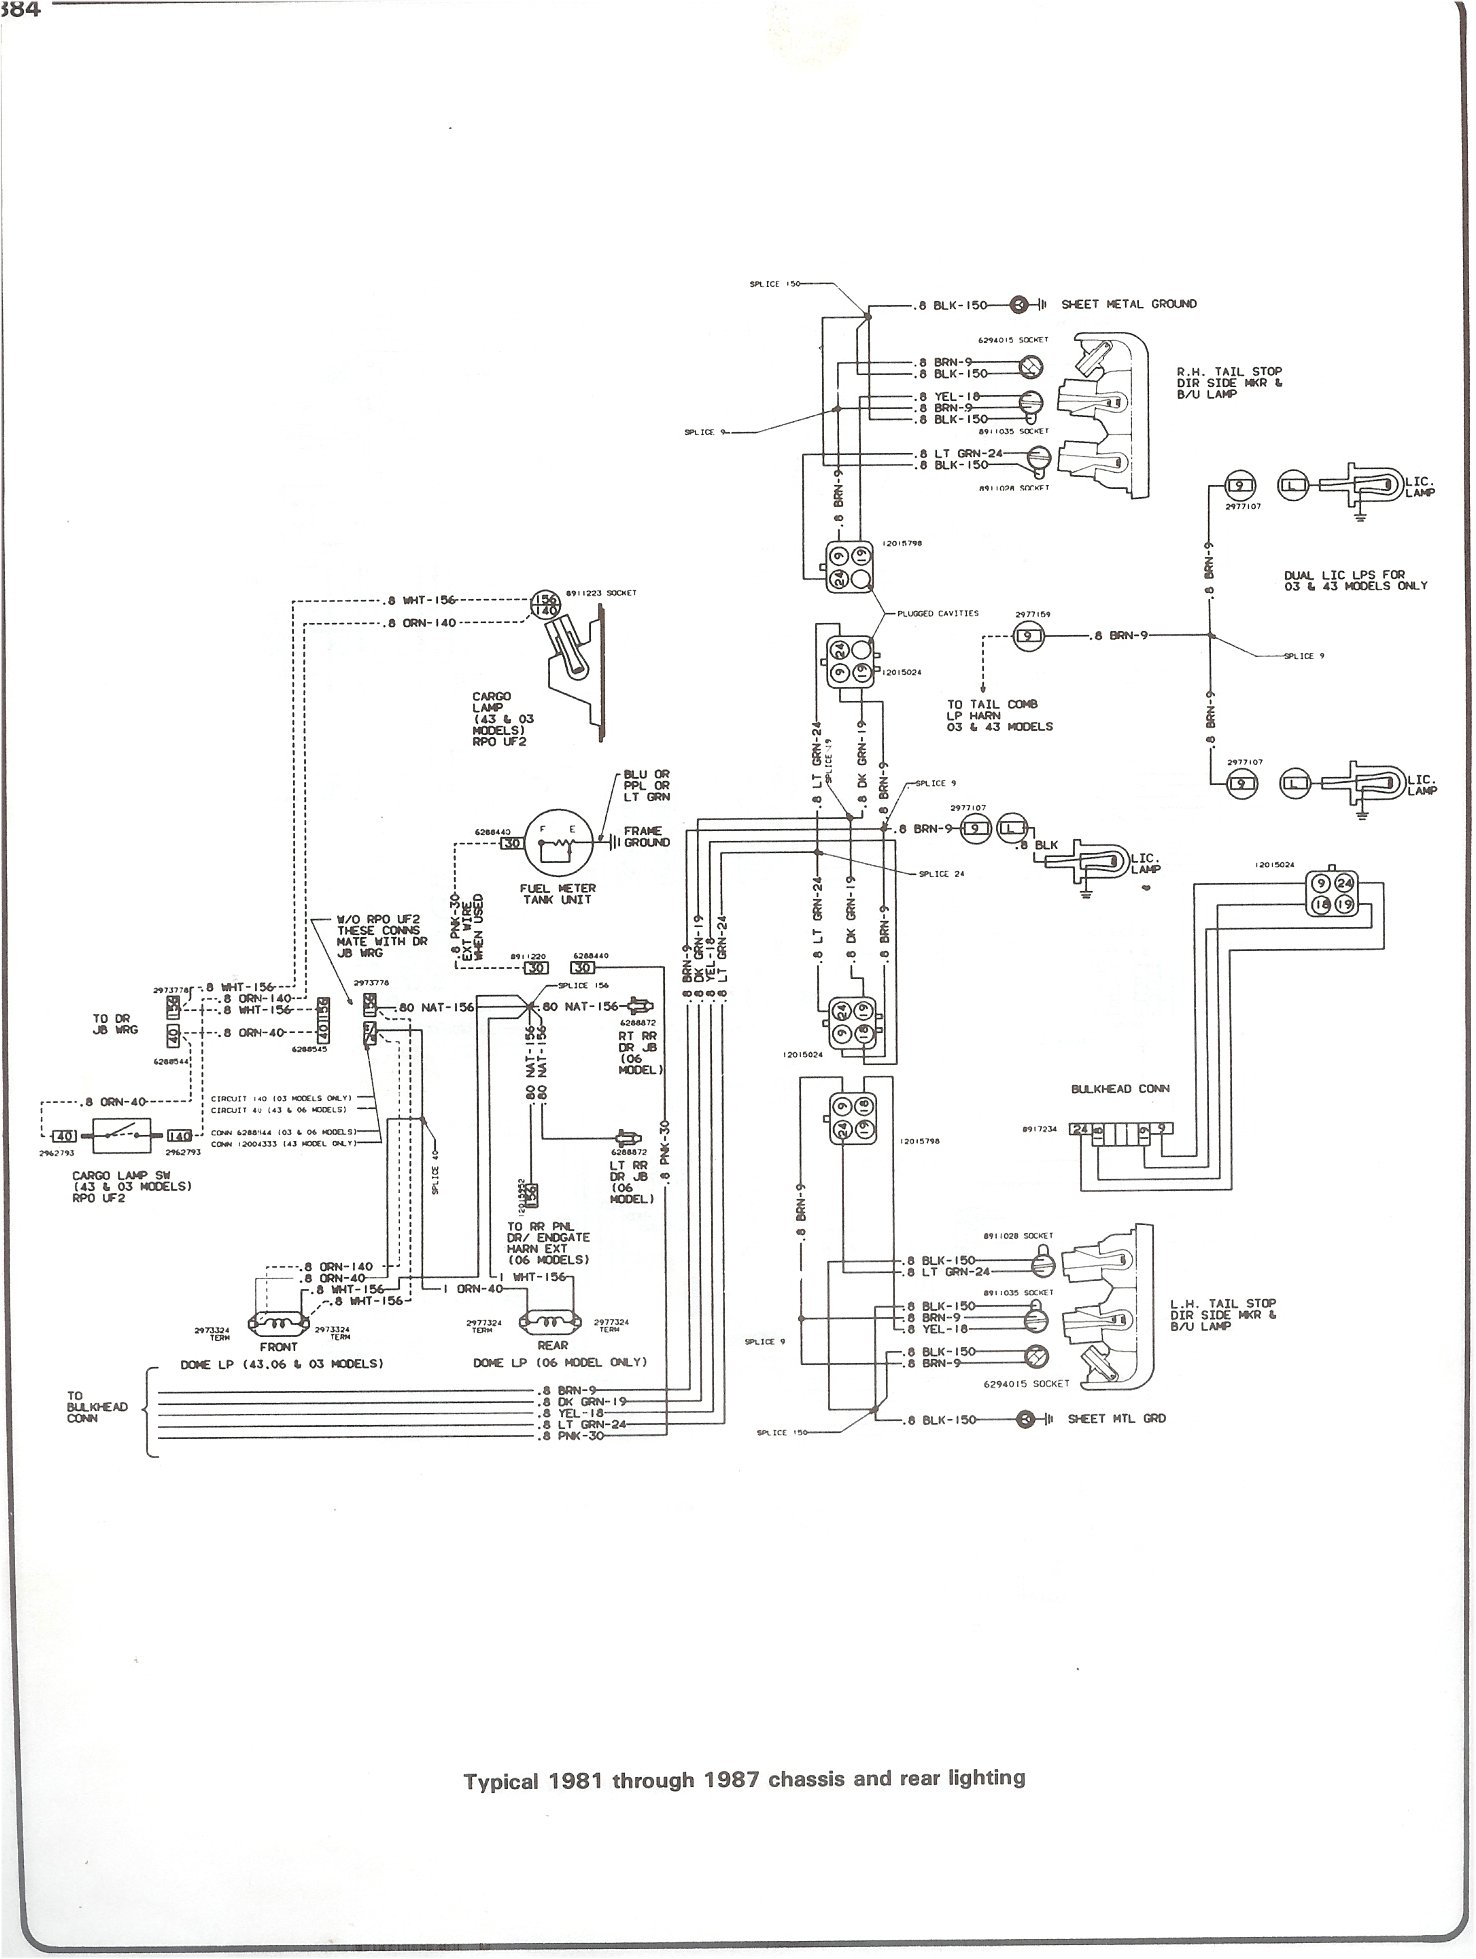 81 K 5 Wiring Diagram Library. 86 Blazer Fuse Box Opinions About Wiring Diagram \u2022 Trans Am K5. Wiring. Wiring Diagram For K5 Blazer At Scoala.co